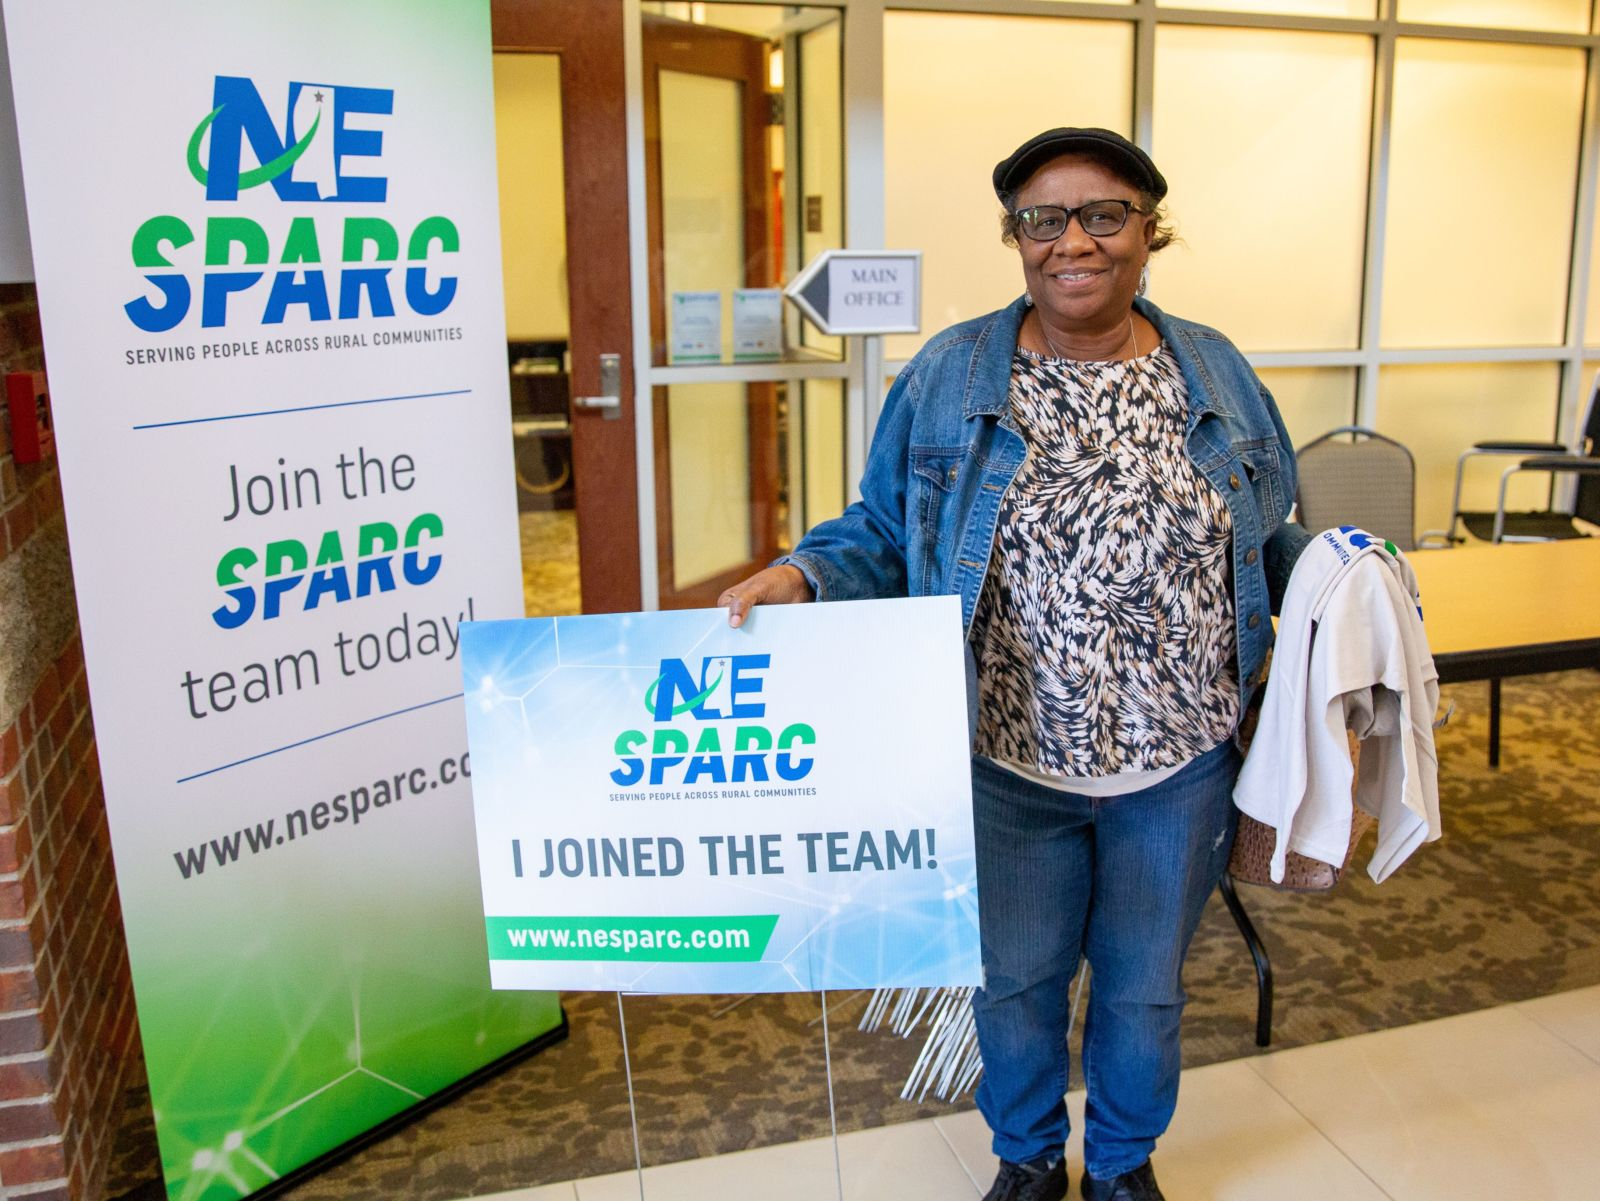 African American woman standing next to signage. NE SPARC. Serving people across rural communities. Join the SPARC team today. www.nesparc.com. NE SPARC. Serving people across rural communities. I joined the team! www.nesparc.com.